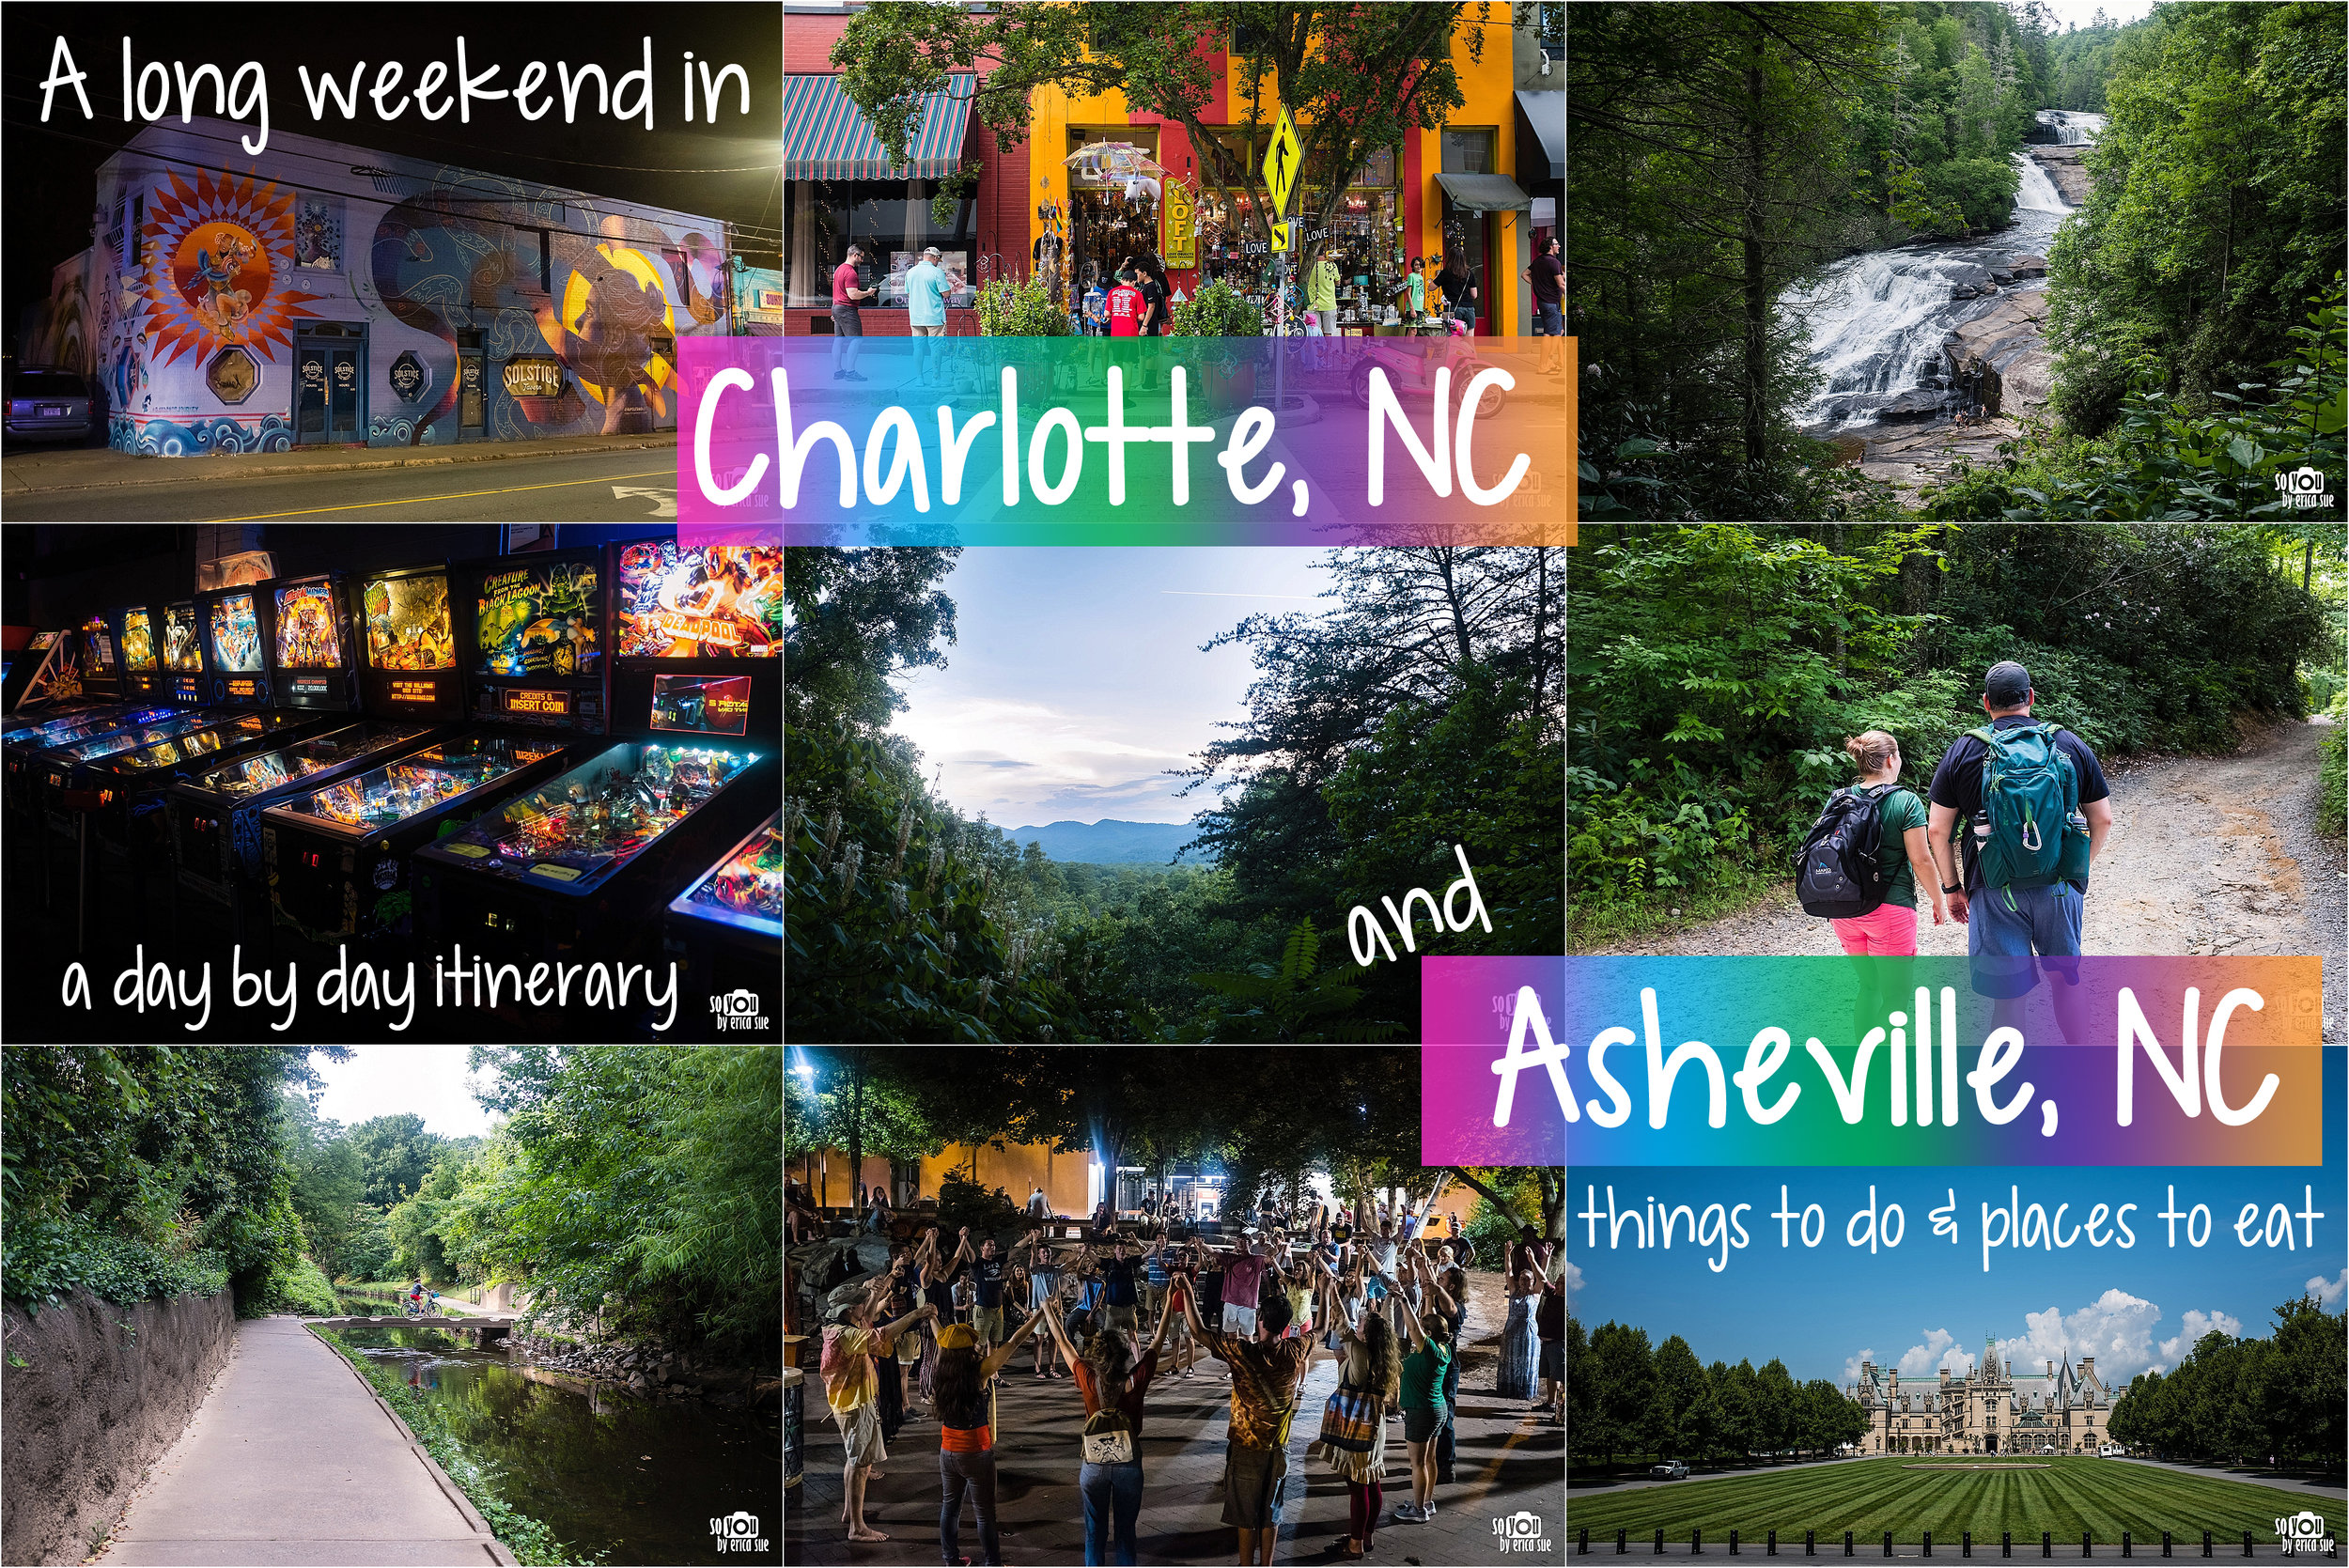 long-weekend-charlotte-nc-asheville-nc-things-to-do-where-to-eat-travel-itinerary-so-you-by-erica-sue.jpg